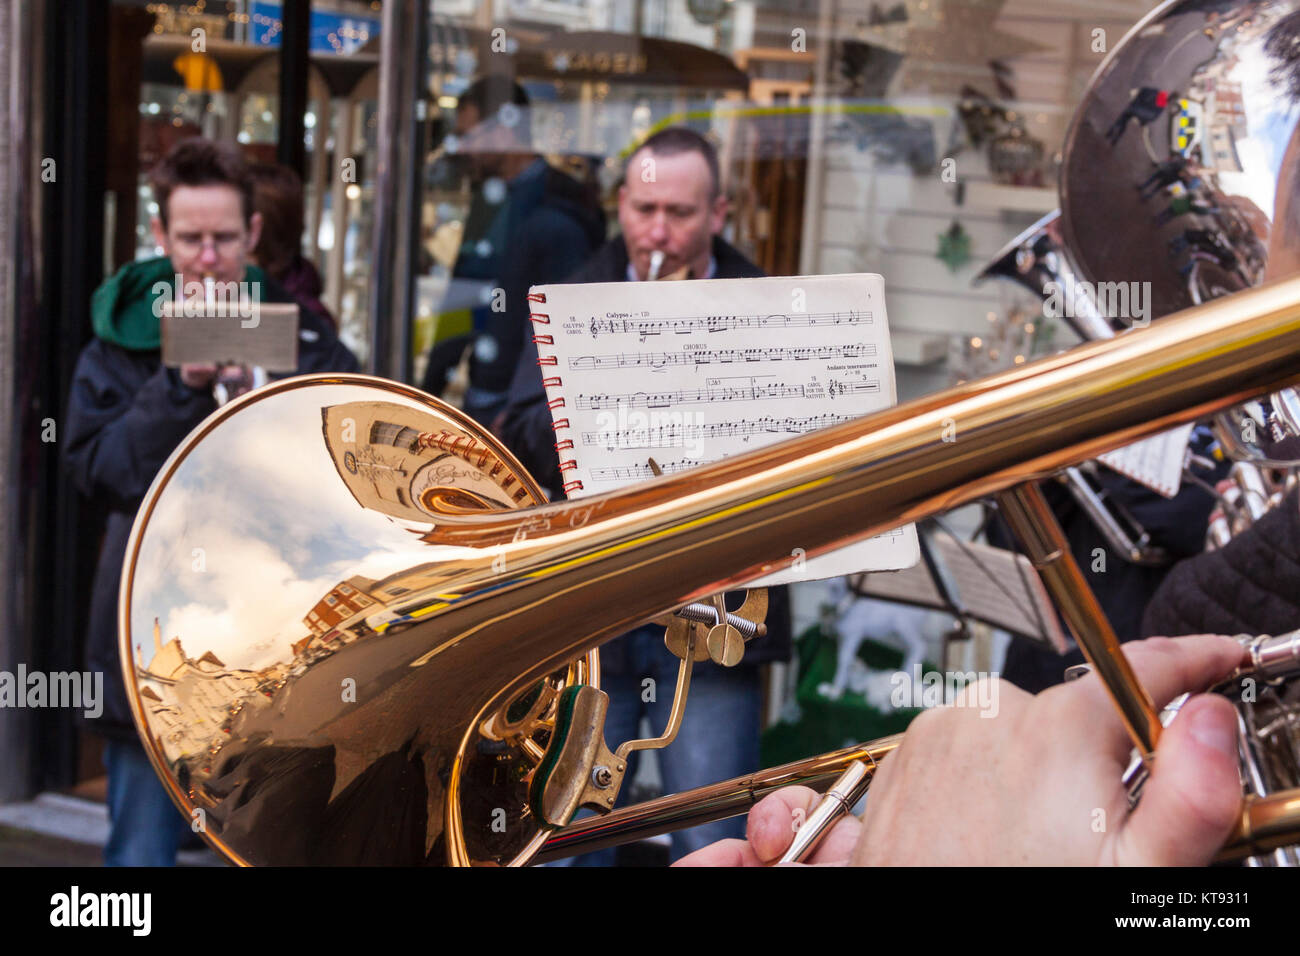 Sidmouth, Devon. 23rd Dec, 2017. UK Weather: Festive buskers out on the streets of Sidmouth, Devon on a mild and - Stock Image